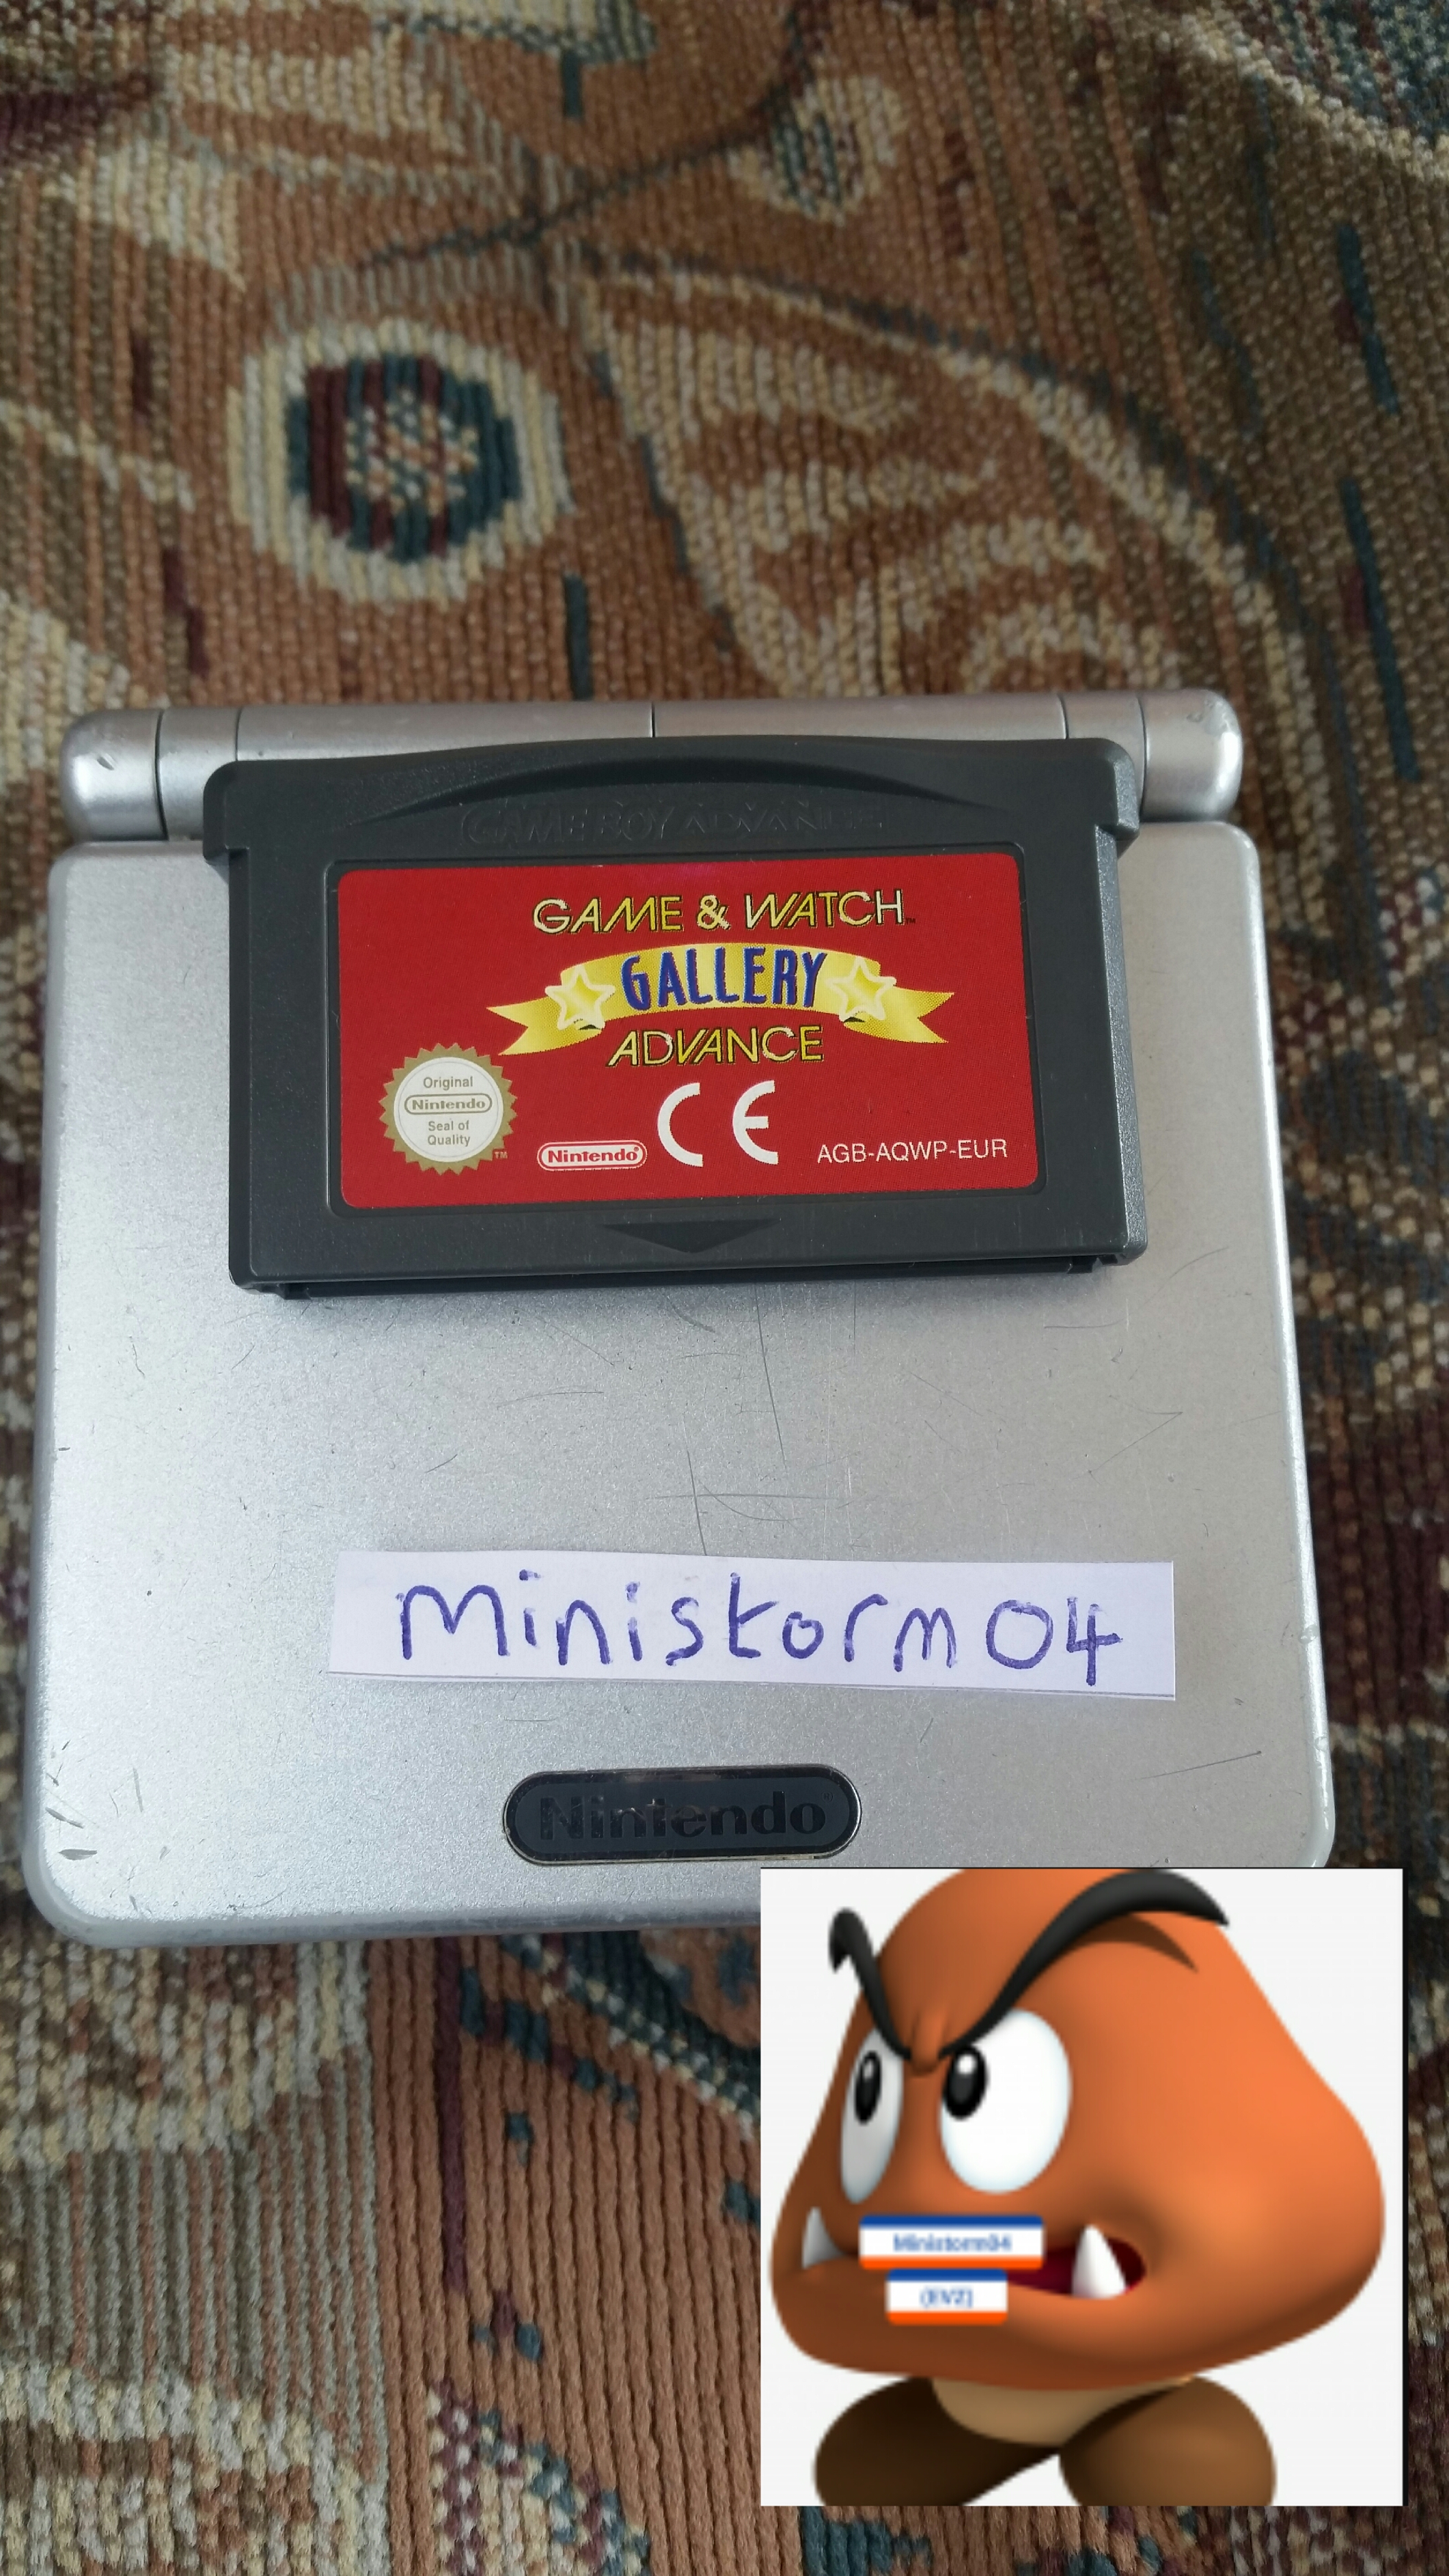 ministorm04: Game & Watch Gallery 4: Fire [Classic: Easy] (GBA) 57 points on 2019-05-27 09:31:46